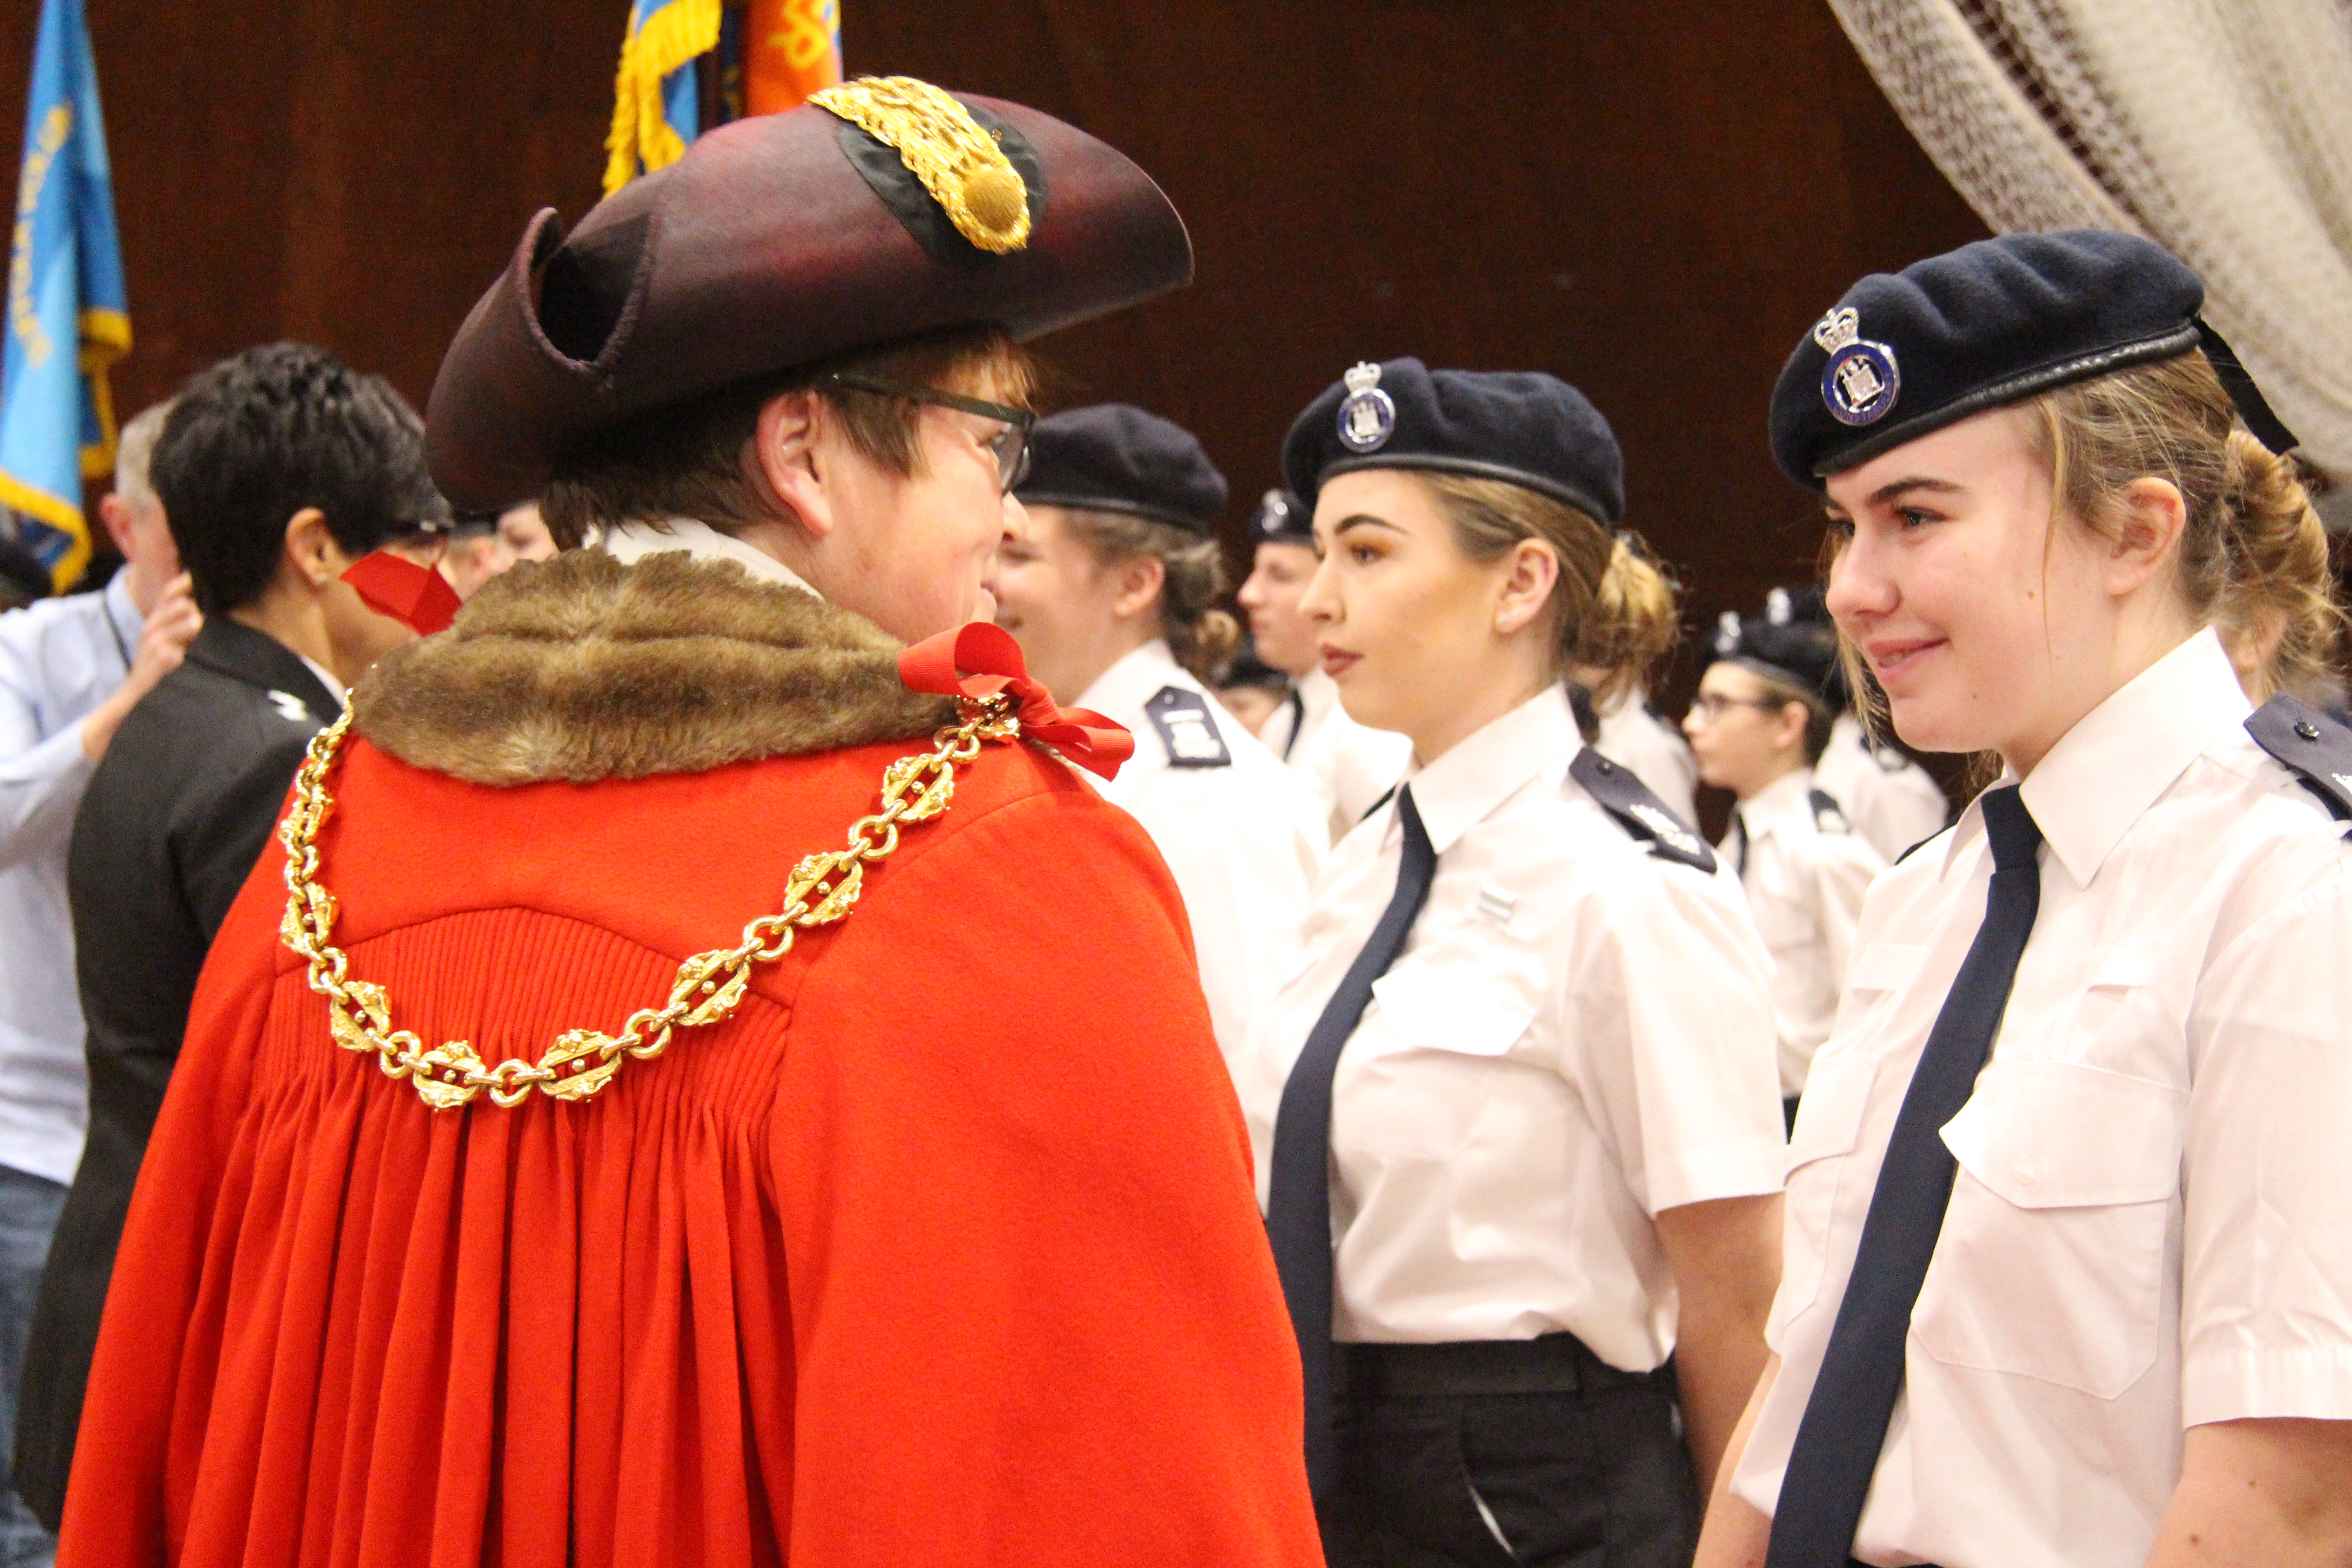 High Sheriff's inspection